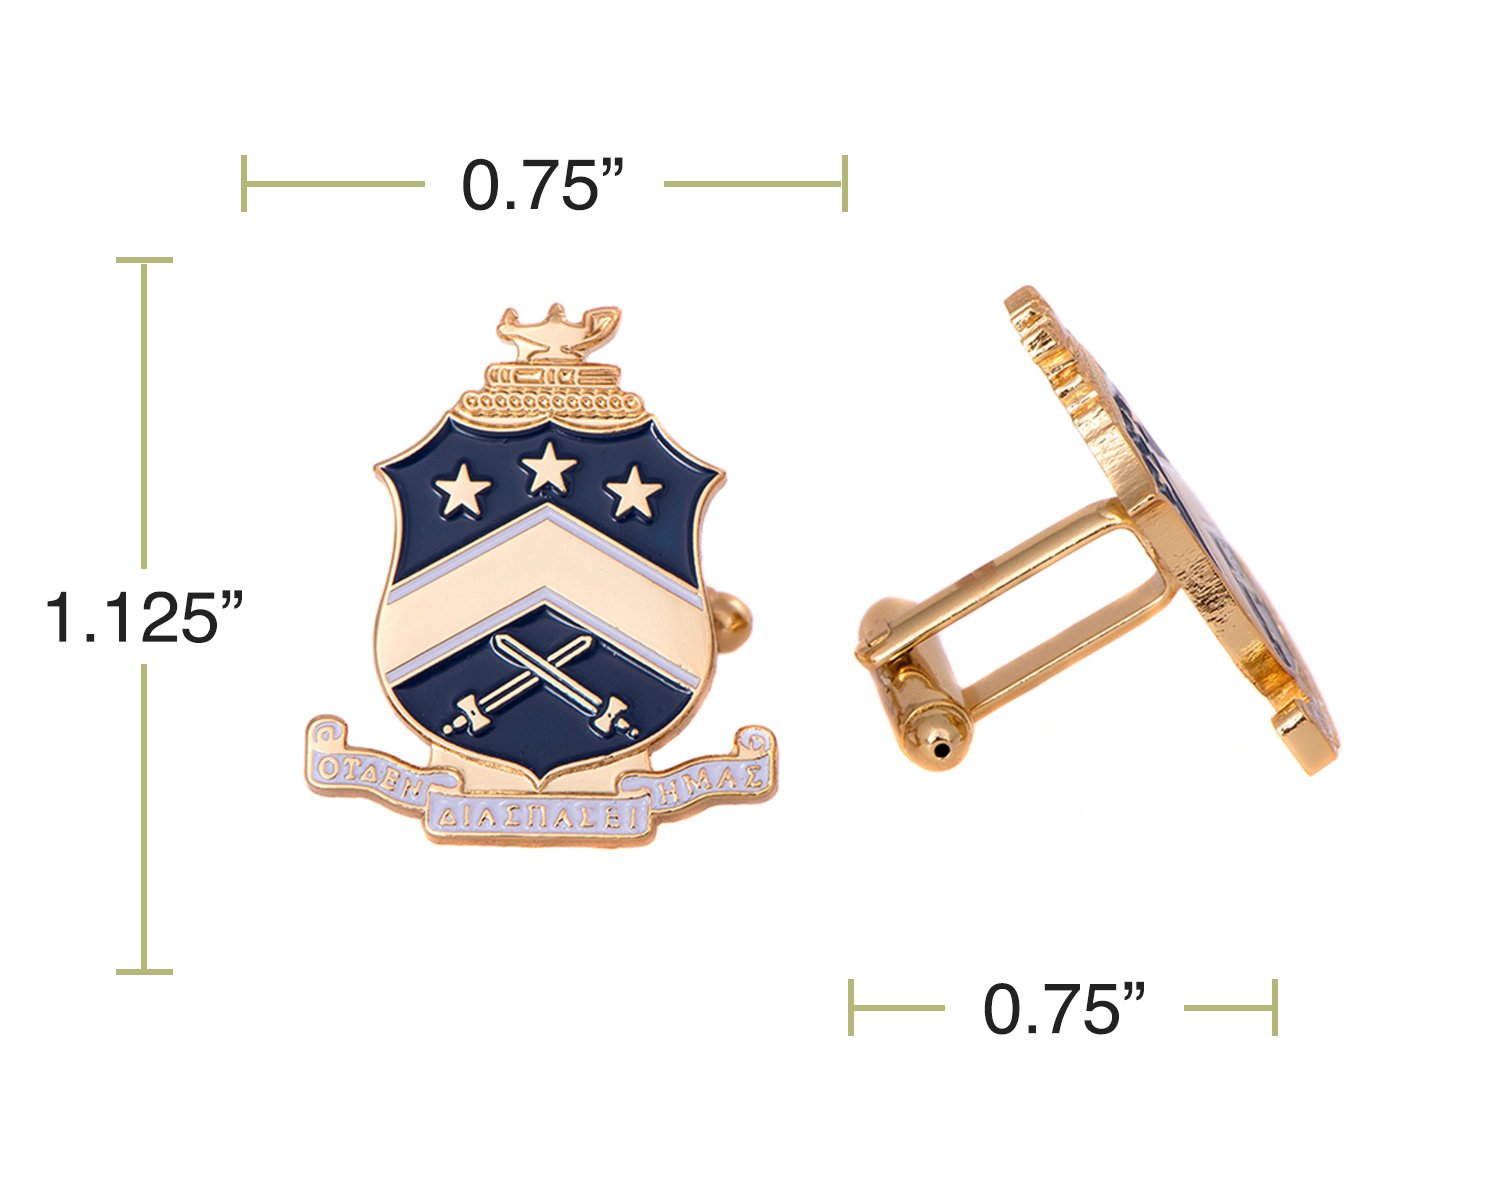 Desert Cactus Pi Kappa Phi Fraternity Crest Cufflinks Greek Formal Wear Blazer Jacket Pi Kapp by Desert Cactus (Image #2)